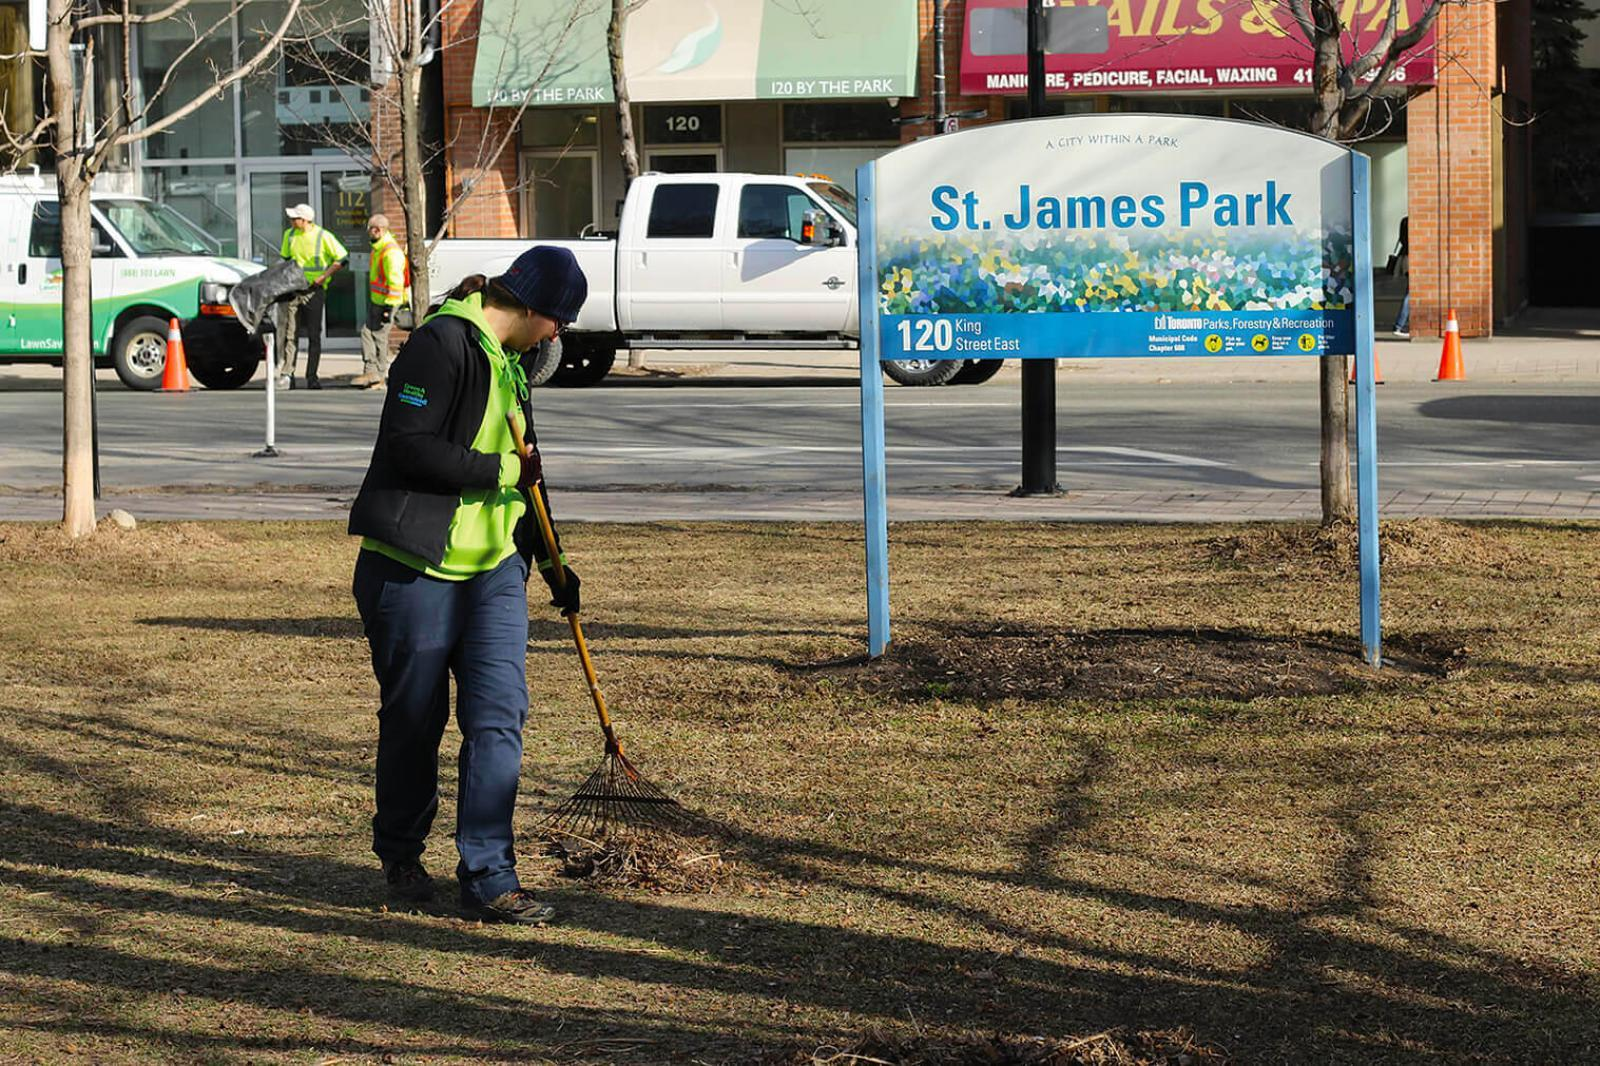 Volunteers began the clean up by raking the turf in the park.